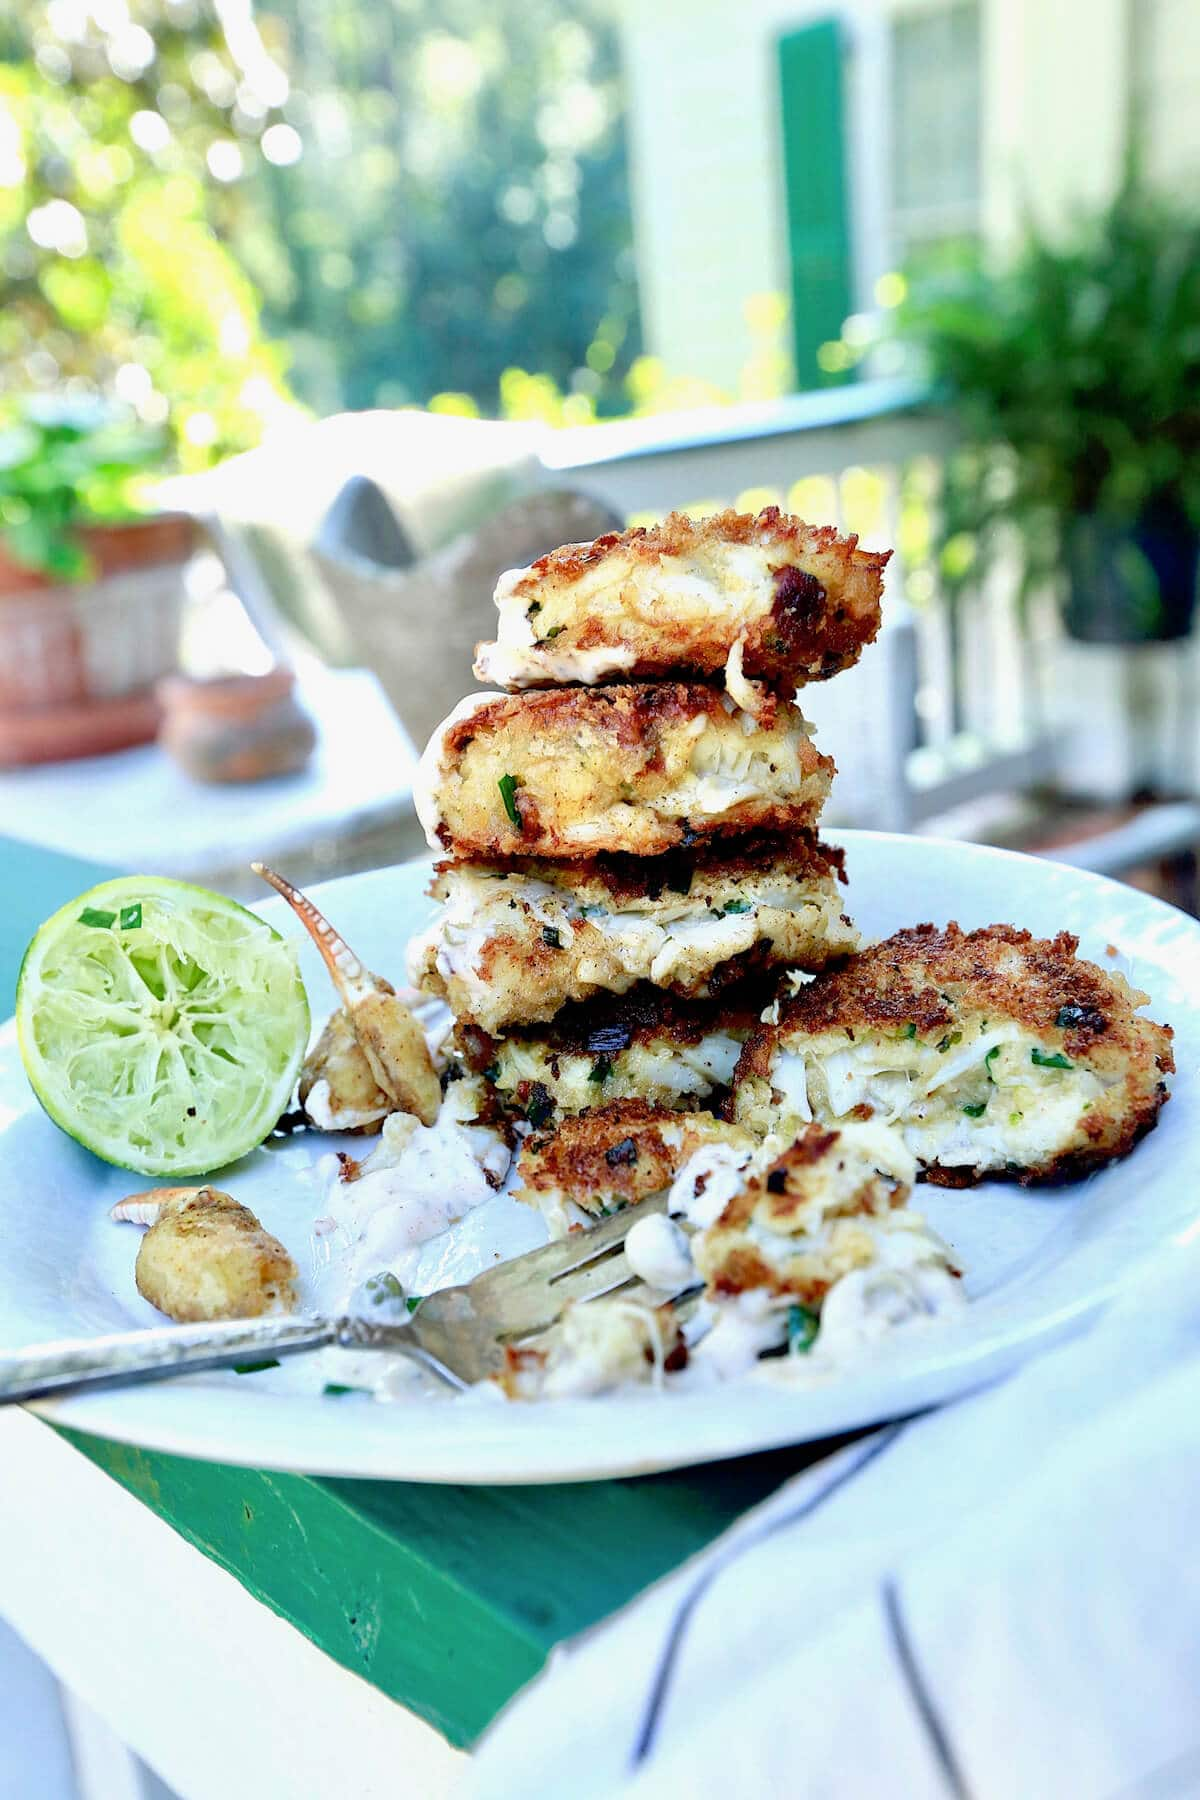 Stacy Lyn's crab cakes made from easy recipe